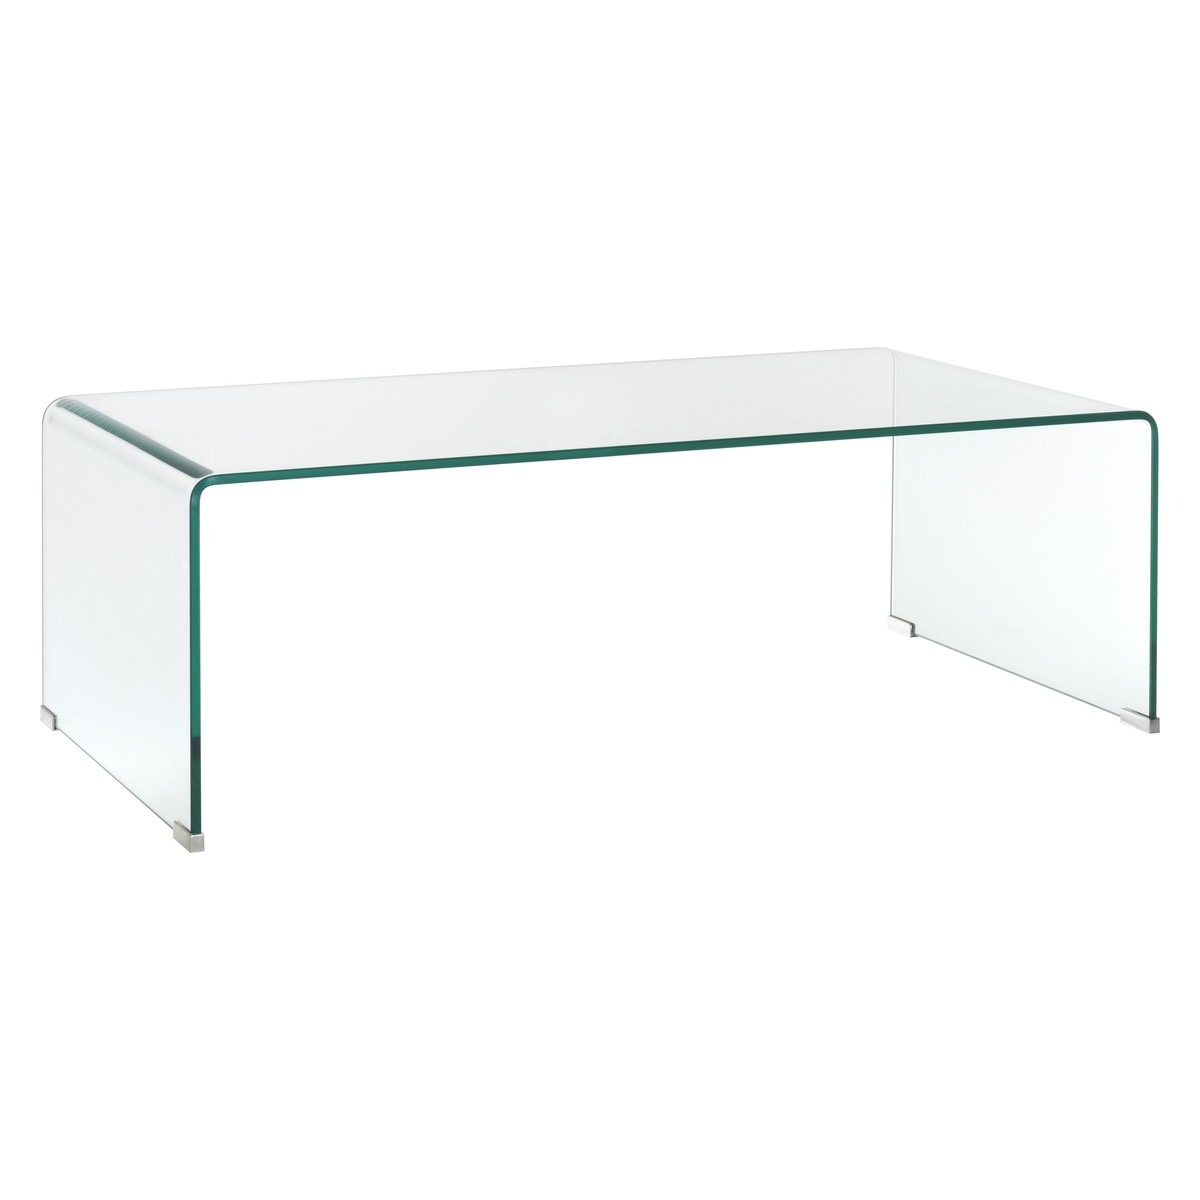 Glass Coffee Table Walmart Tables Elegant With Pictures Of Walmart Tables Interior In (View 8 of 10)